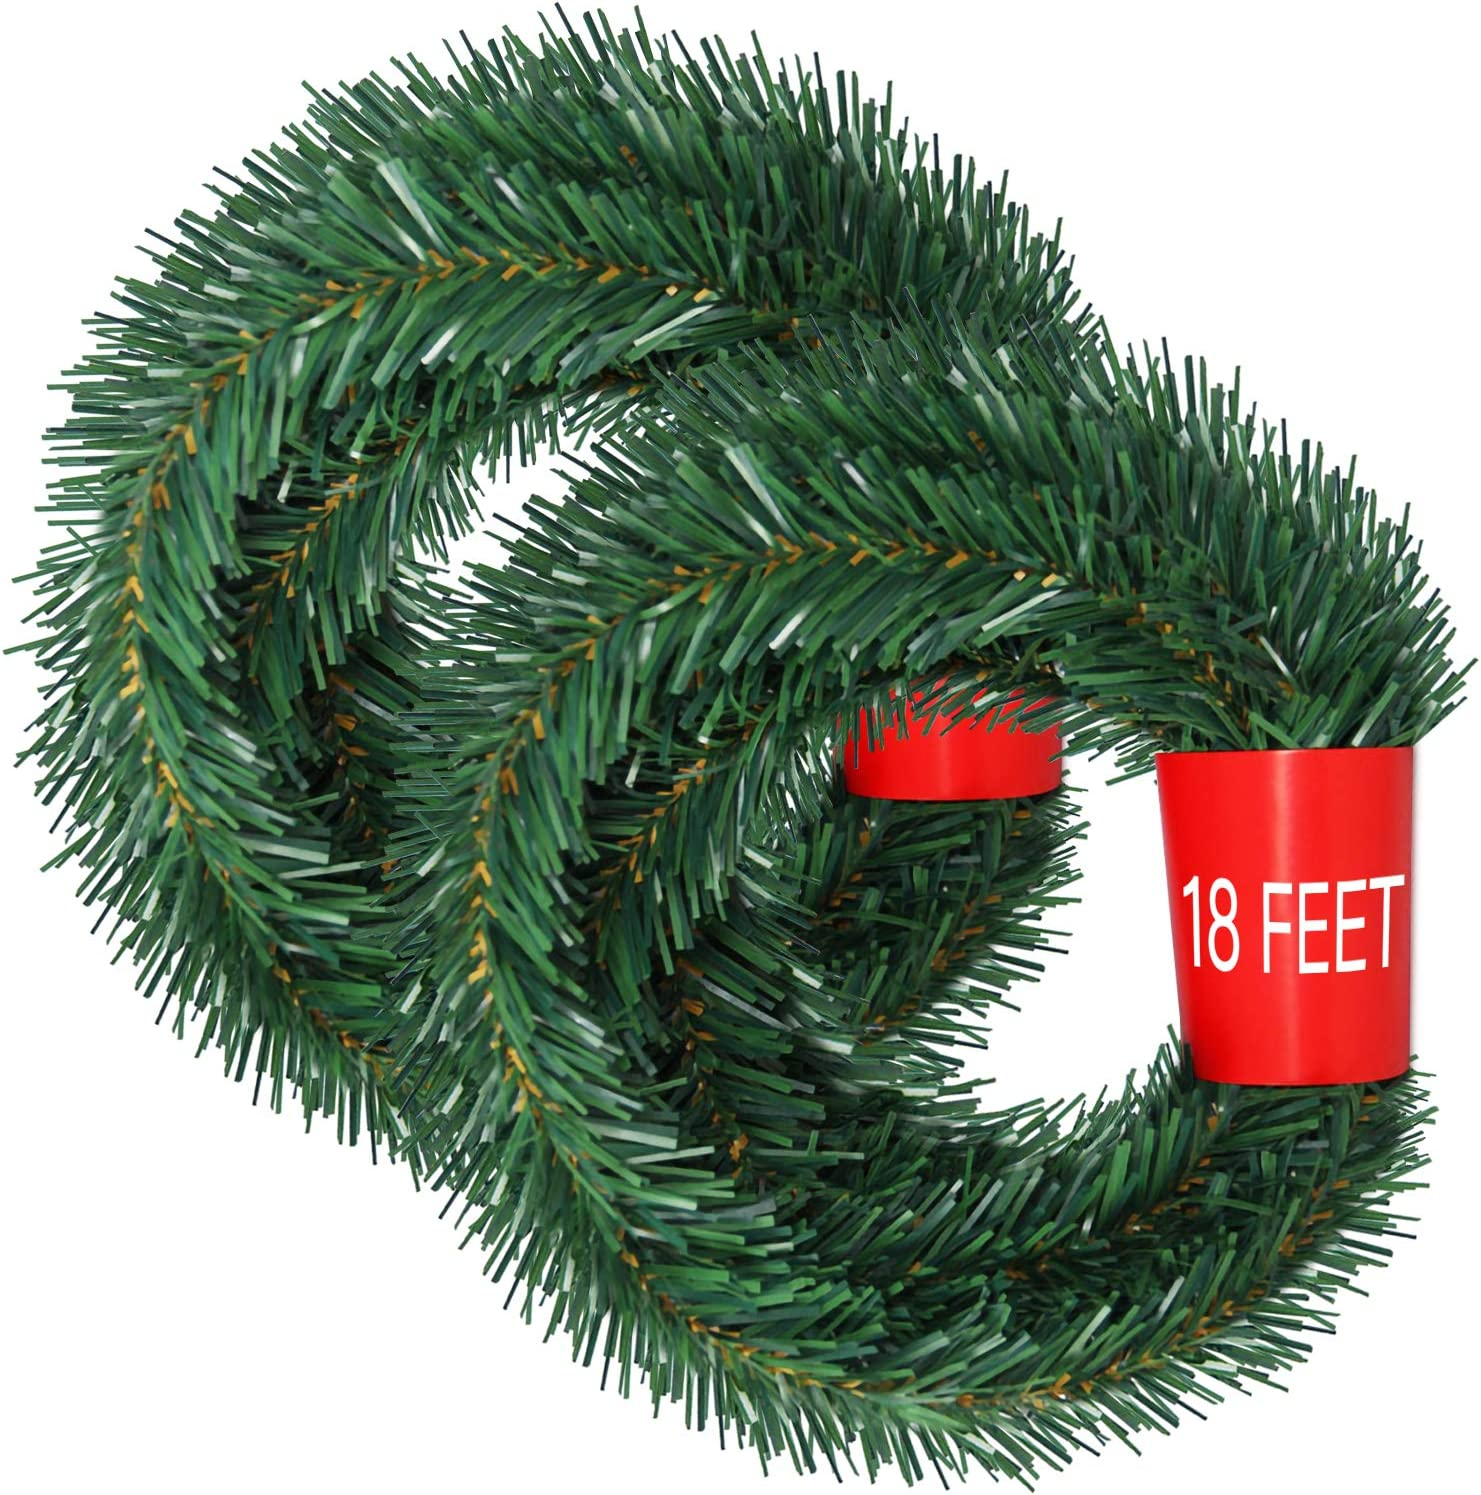 Artiflr 2 Strands Christmas Garland, Total 40 Feet Artificial Pine Garland Soft Greenery Garland for Holiday Wedding Party,Stairs,Fireplaces Decoration, Outdoor/Indoor Use